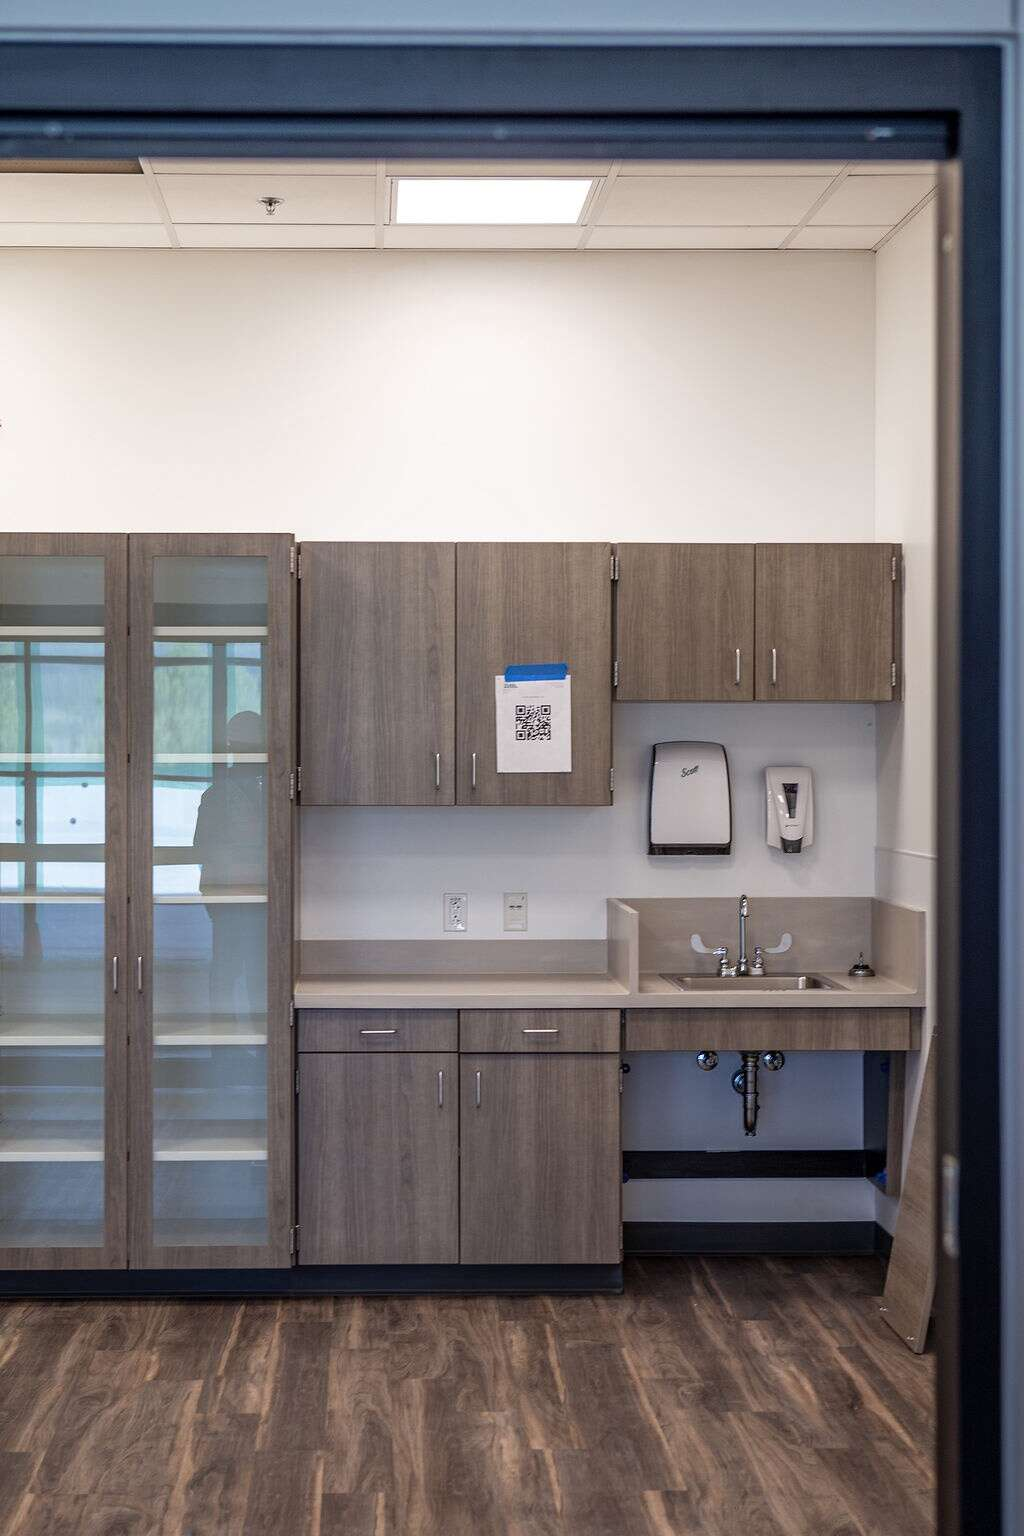 The urgent care room of Vail Health's new medical center in Dillon is pictured on Friday, August 27, 2021. Across the hall is a room where patients can get x-rays if needed.   Photo by Michael Yearout / Michael Yearout Photography